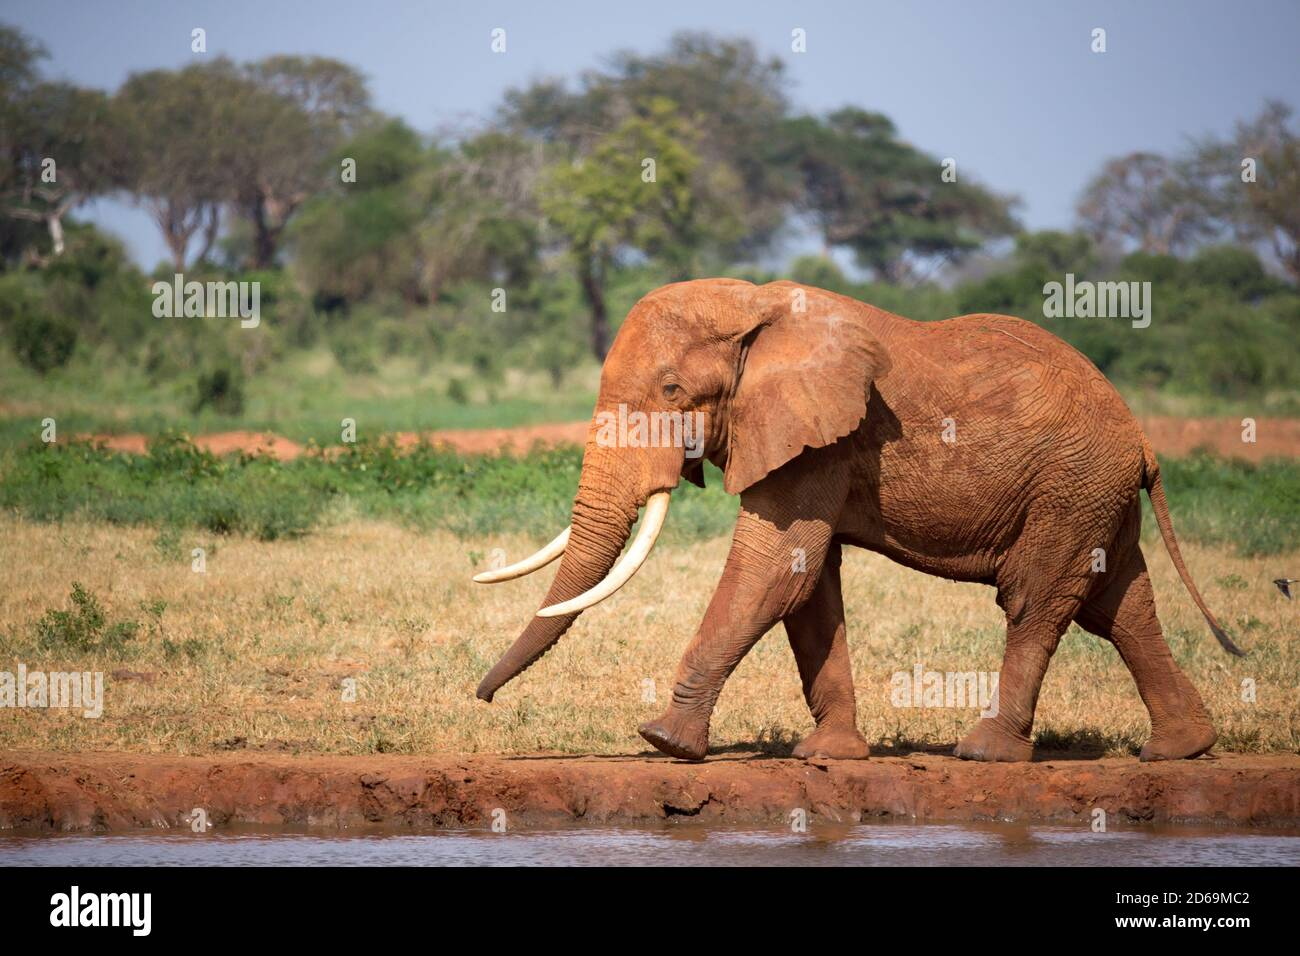 One big red elephant is walking on the bank of a water hole. Stock Photo